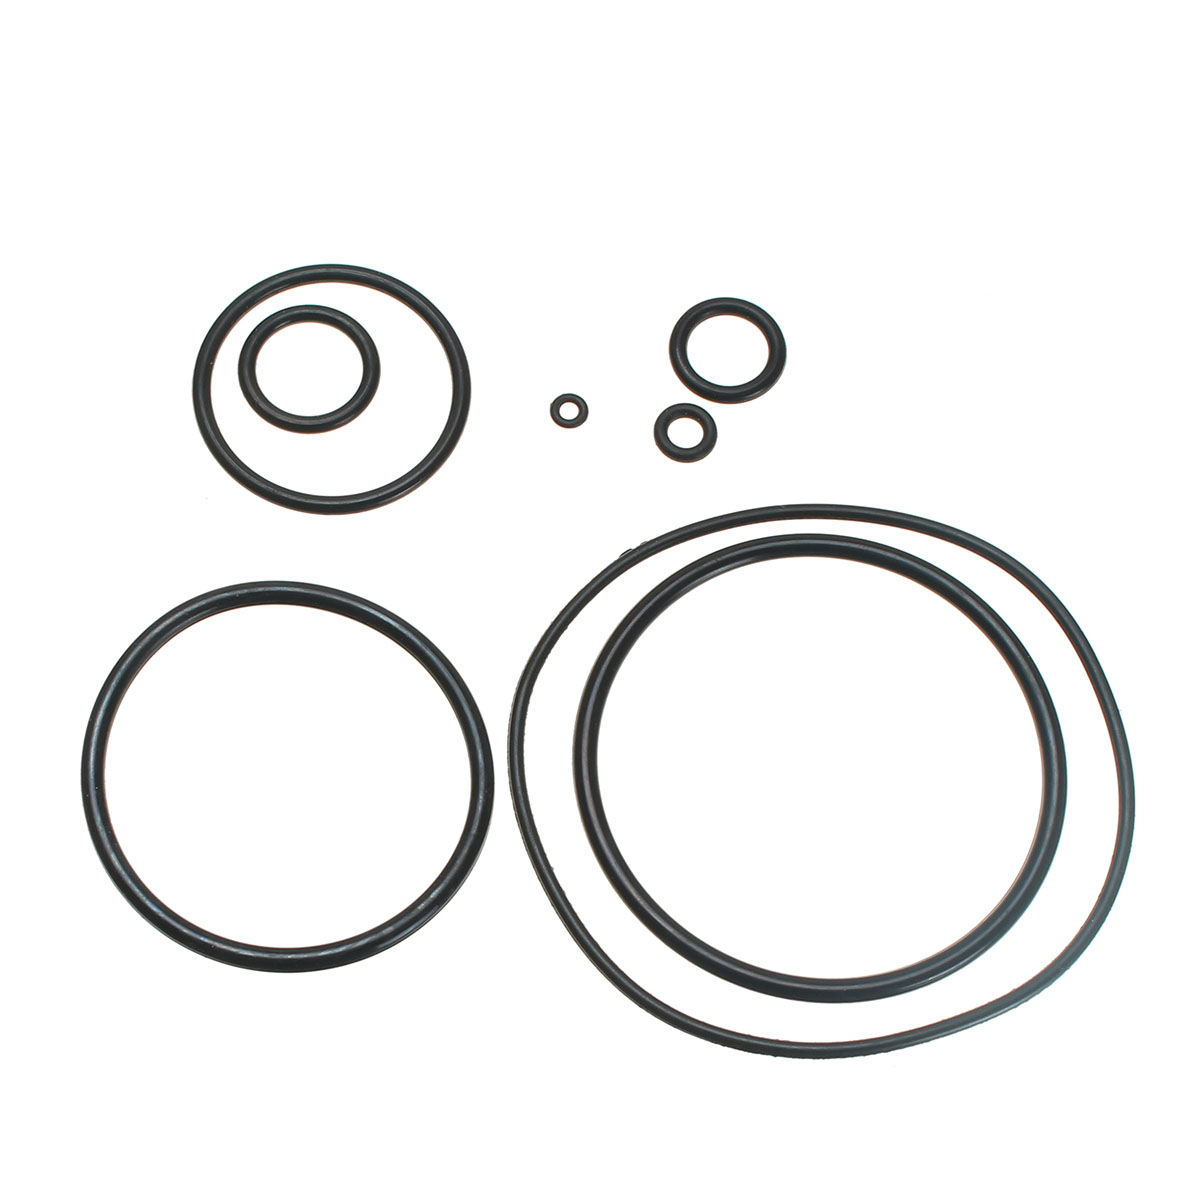 motorcycle engine gaskets seals set for yamaha ttr 125